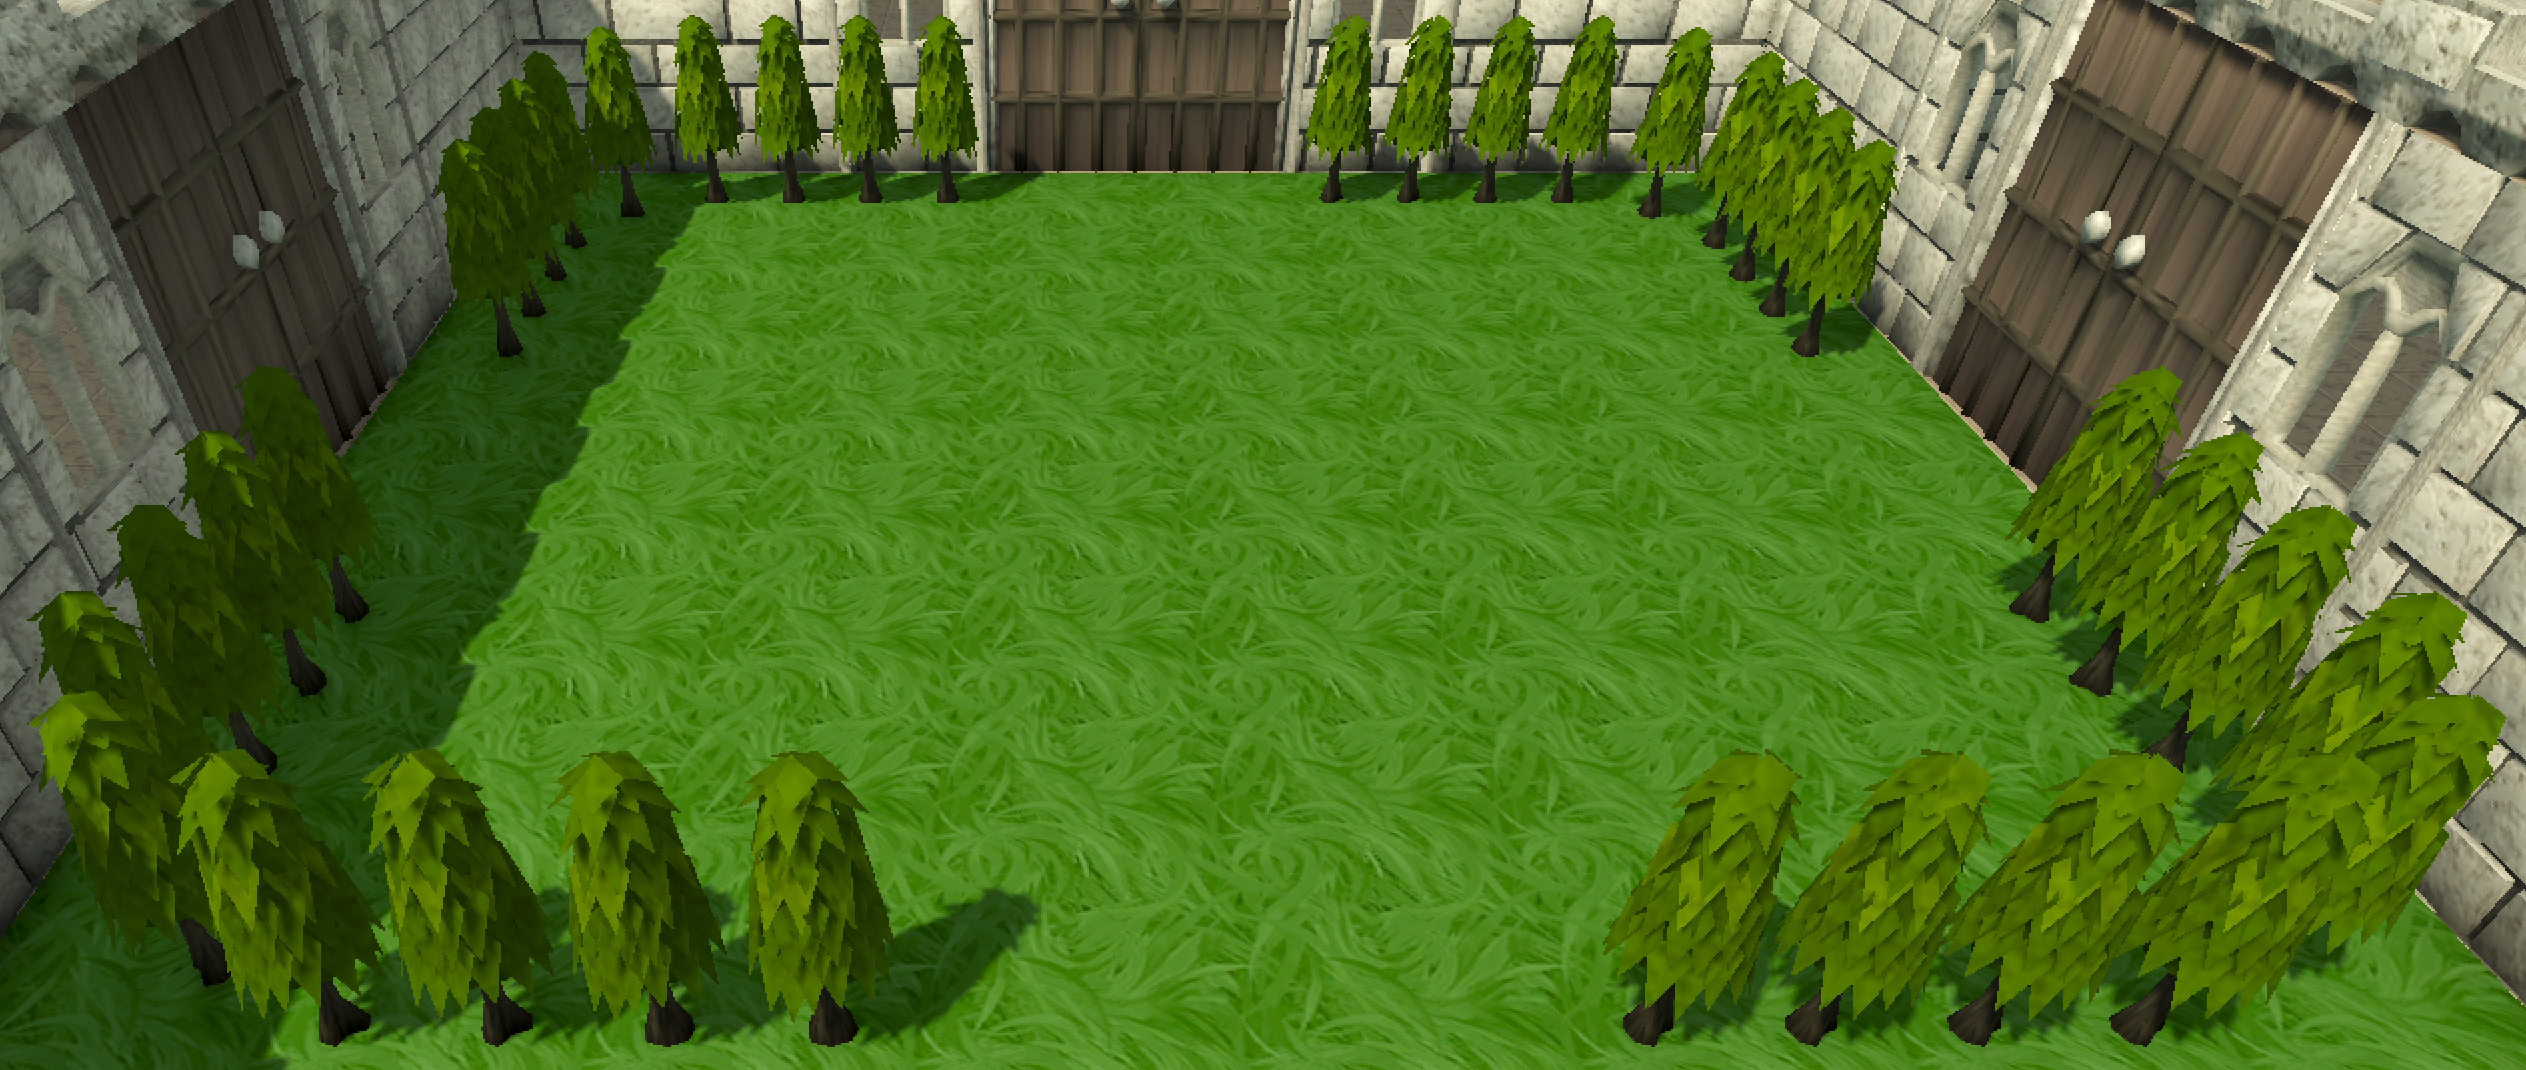 Formal Garden.png: Inventory image of Formal Garden